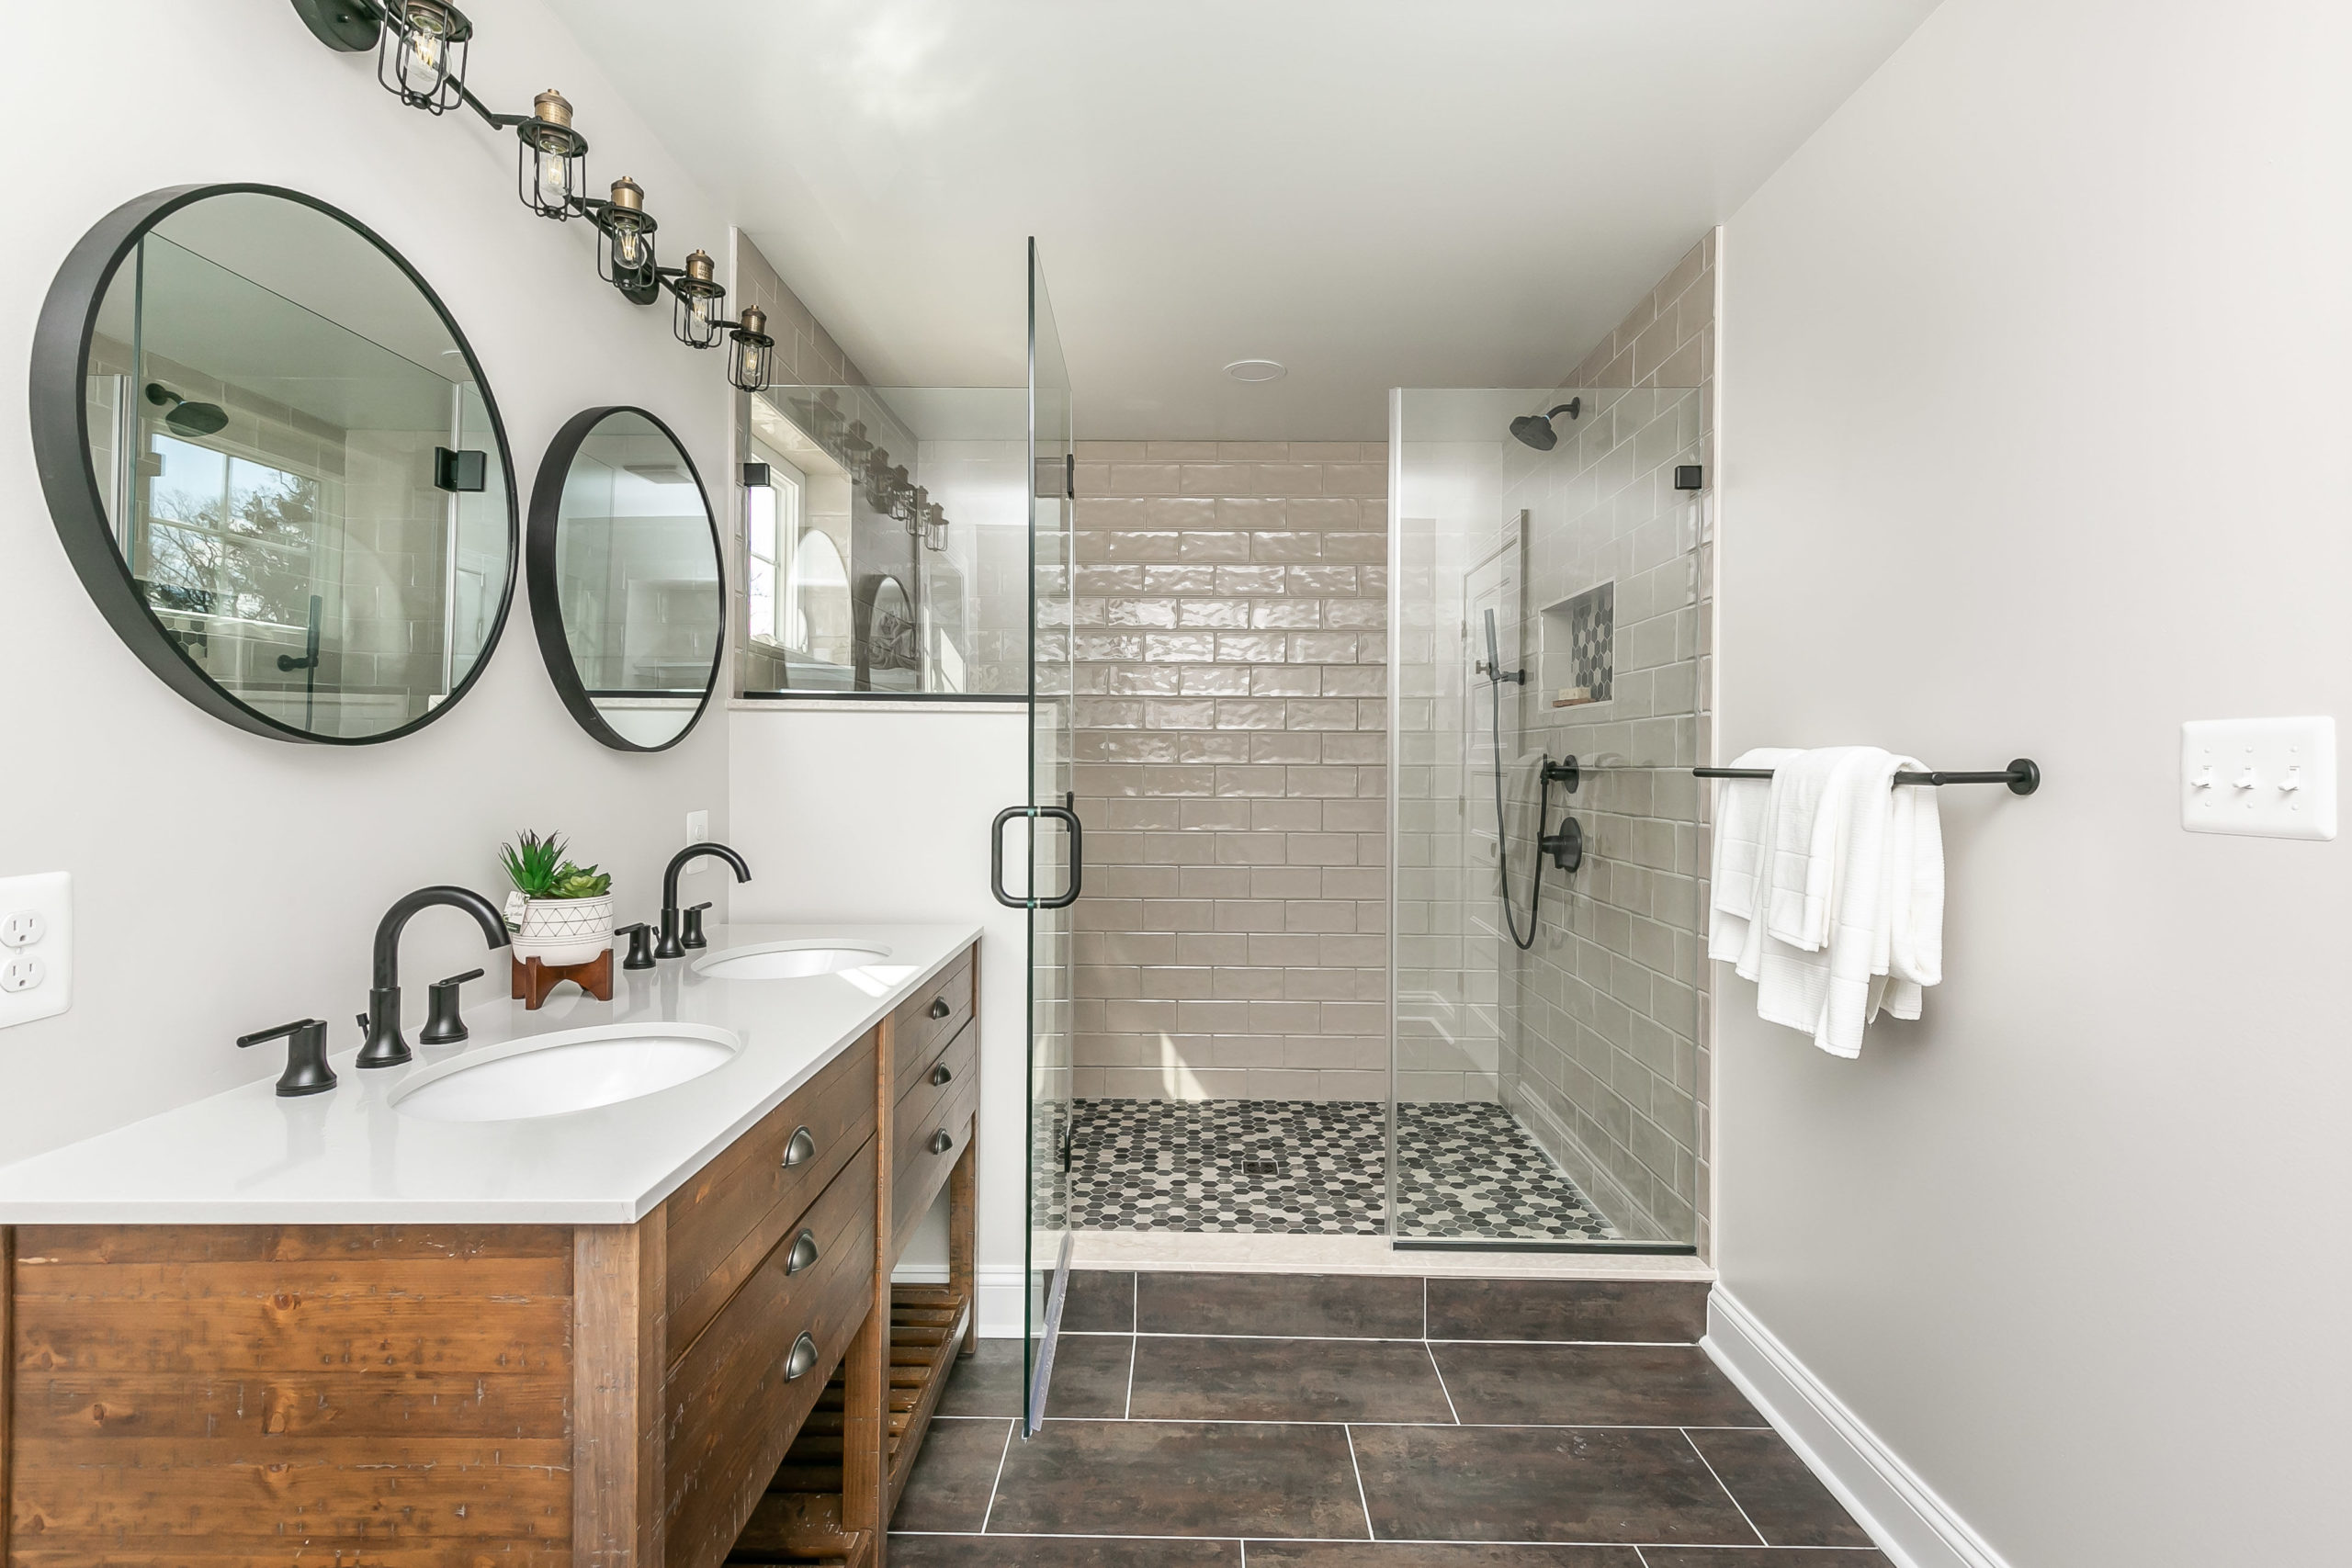 A bathroom in renovated home with concierge service